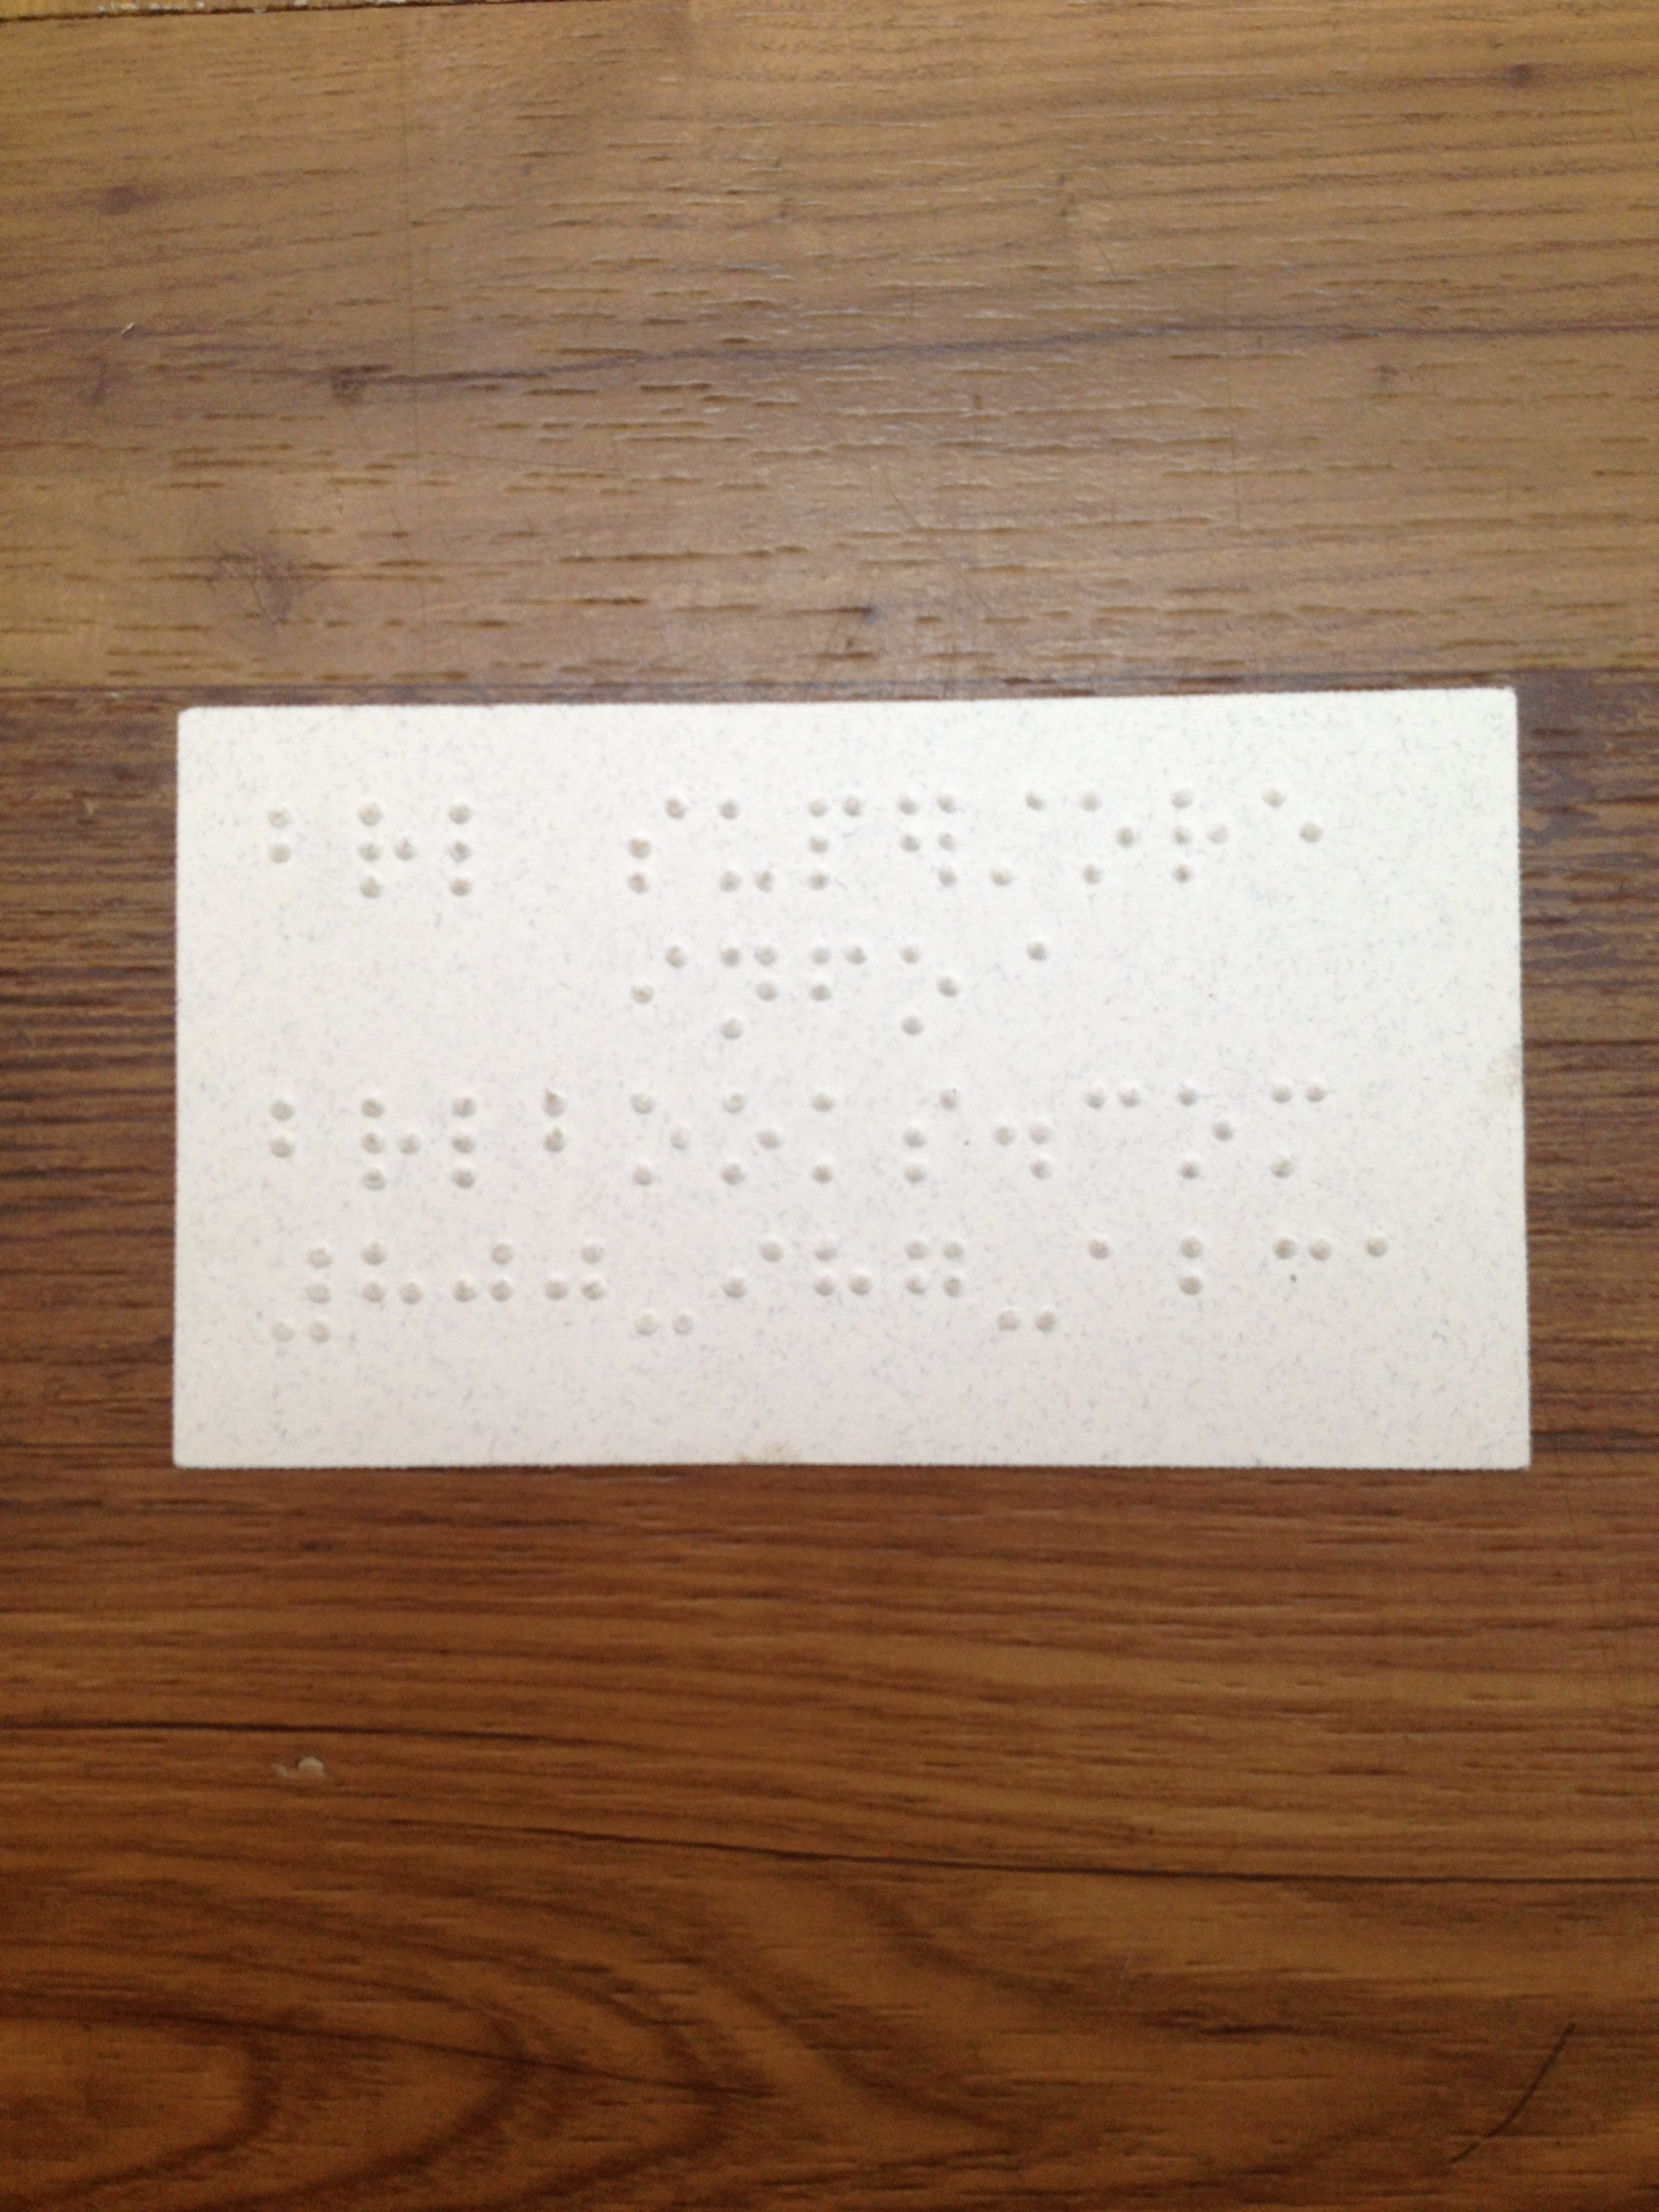 braillebookstore now offering braille business cards